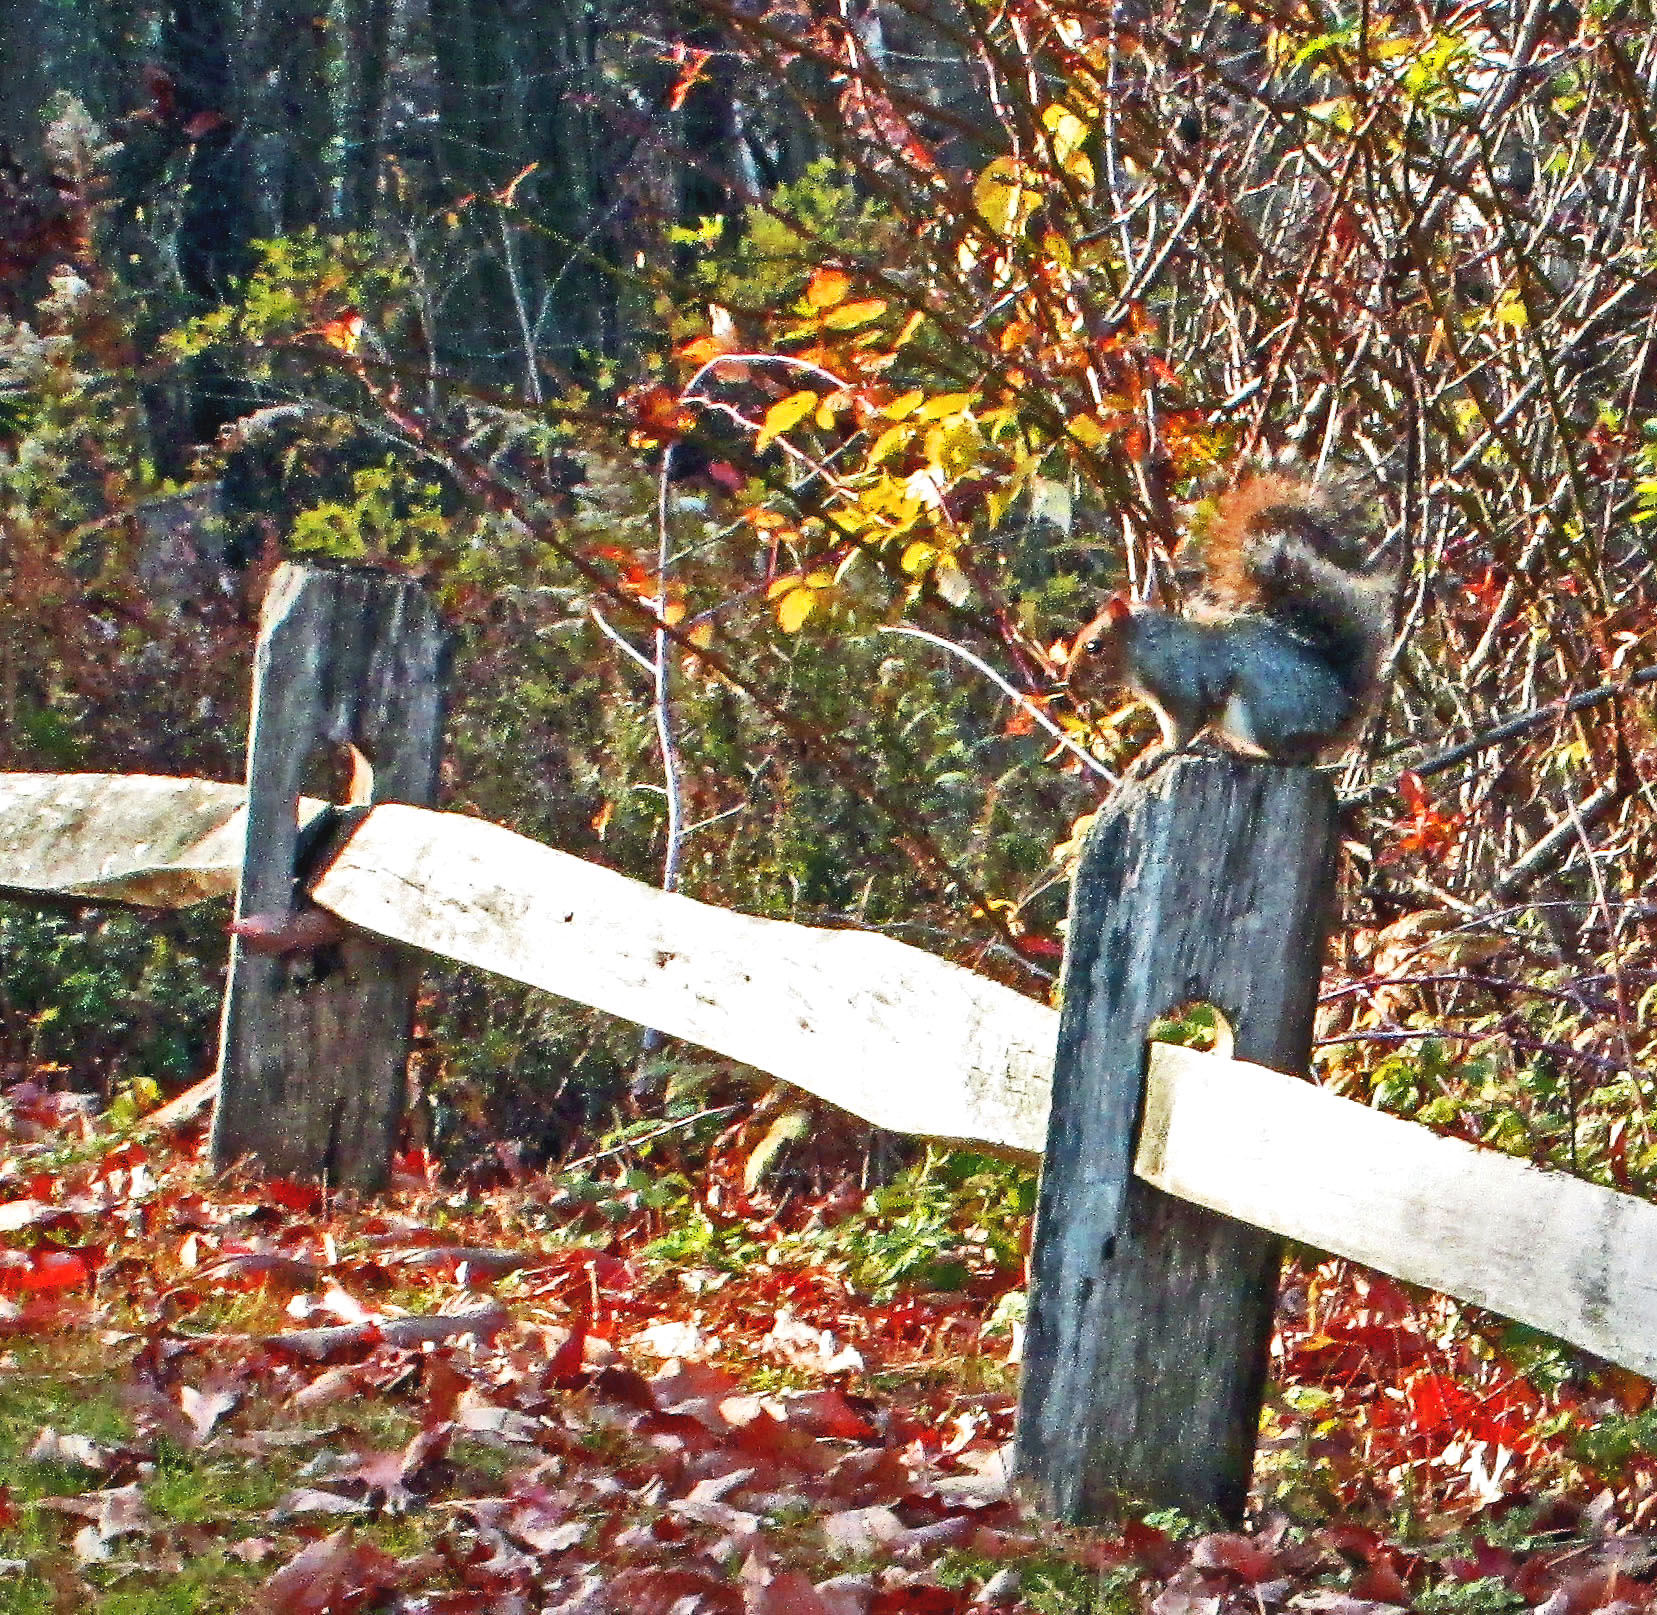 Squirrel At Manasquan Reservoir Environmet Center